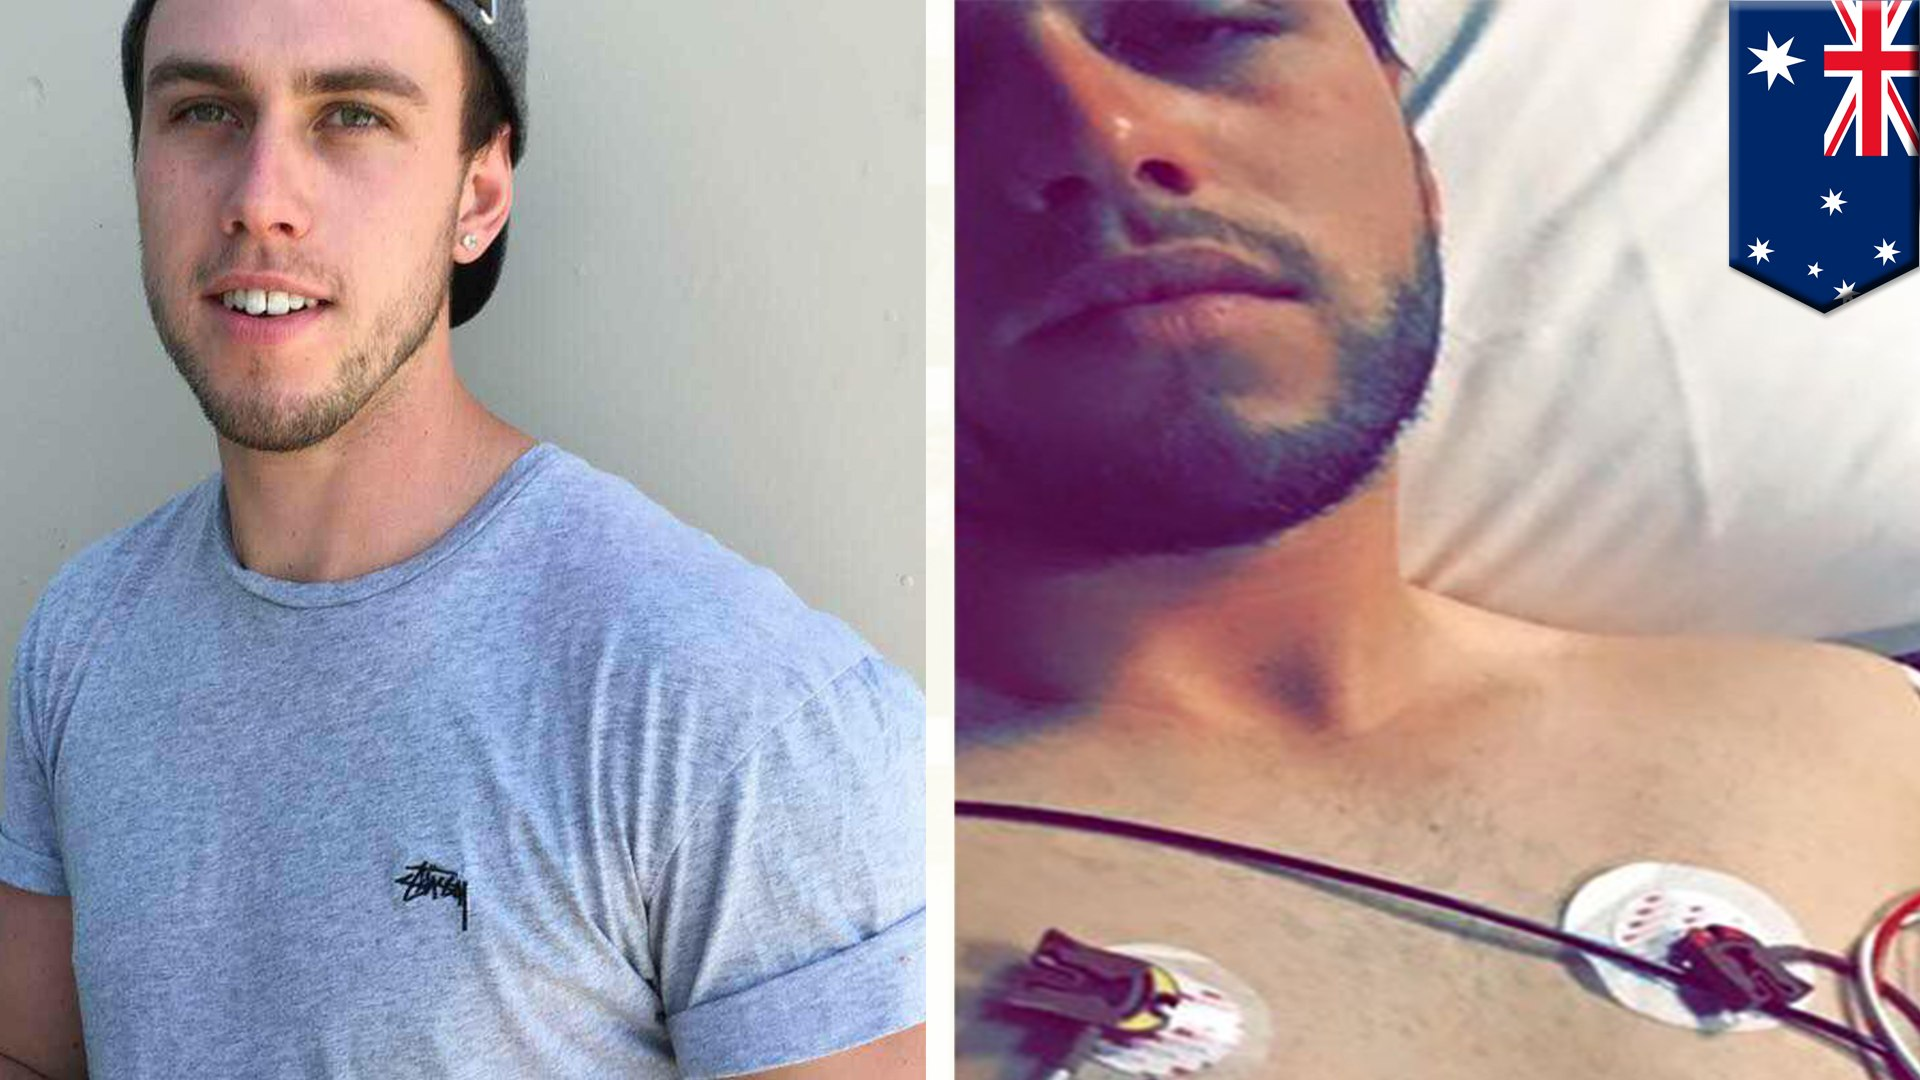 Young man posts this heartbreaking video of the effects of a bad ecstasy pill on his body